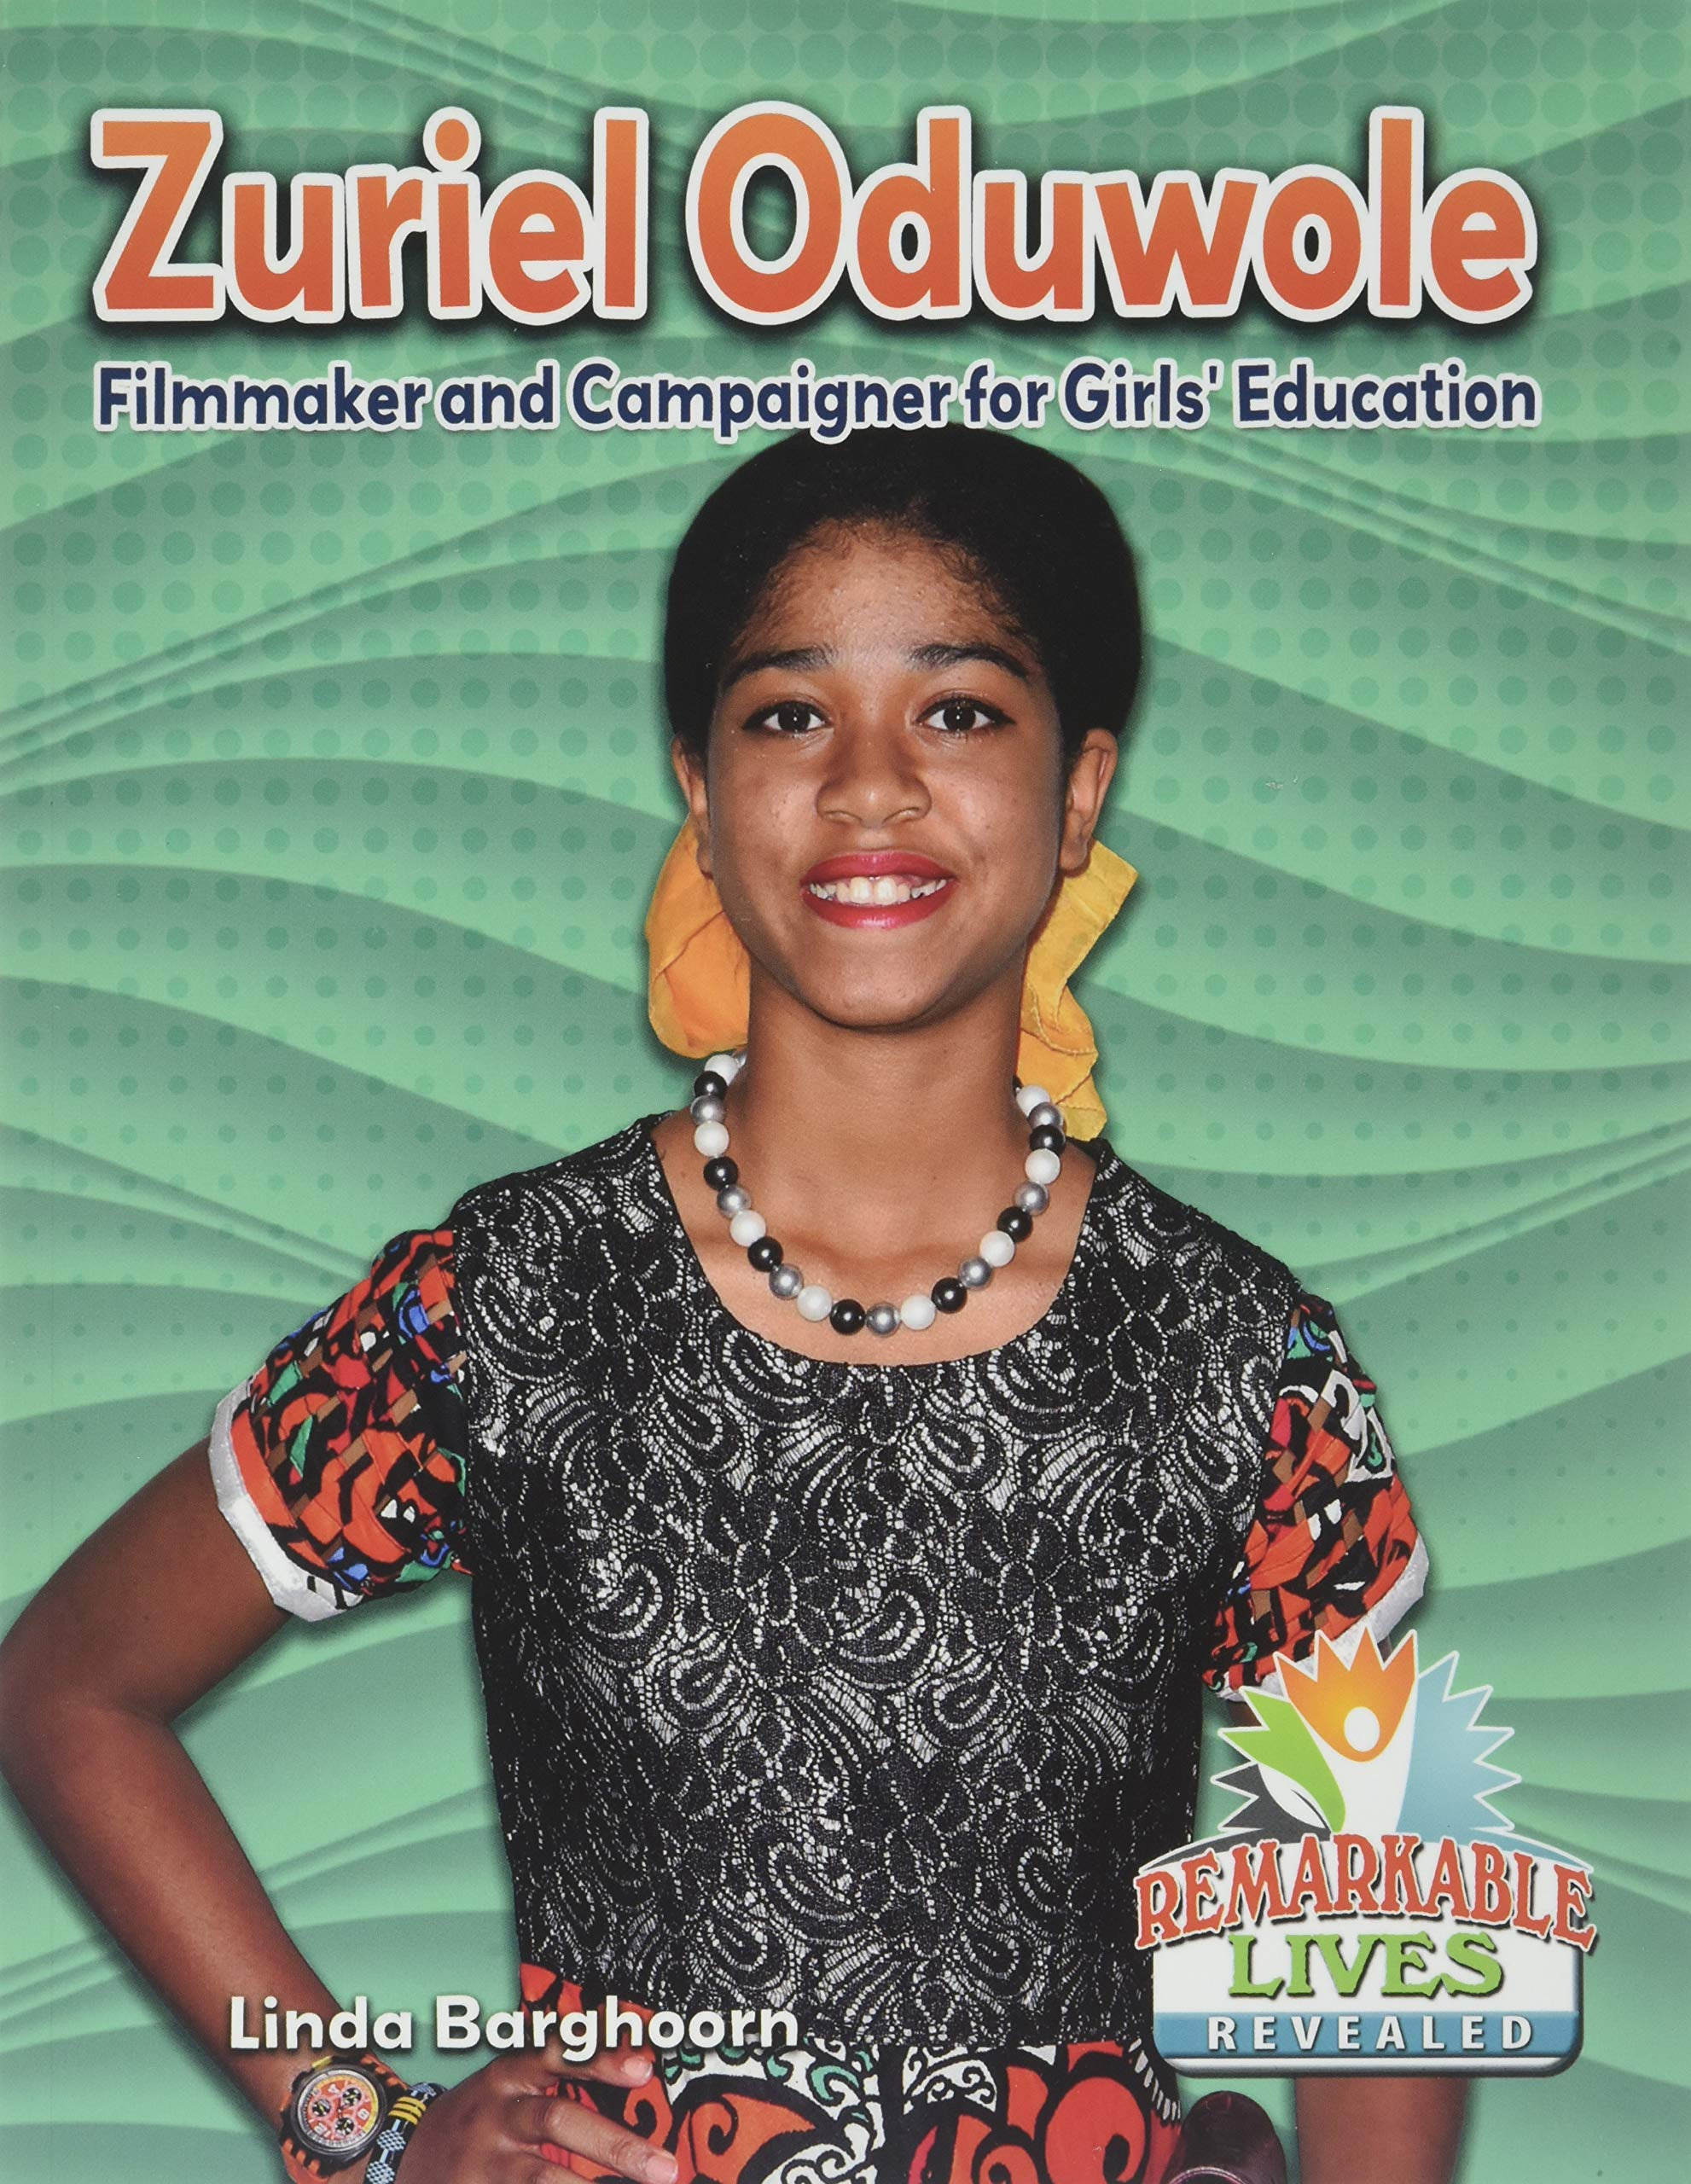 Zuriel Oduwole Filmmaker and Campaigner for Girls Education